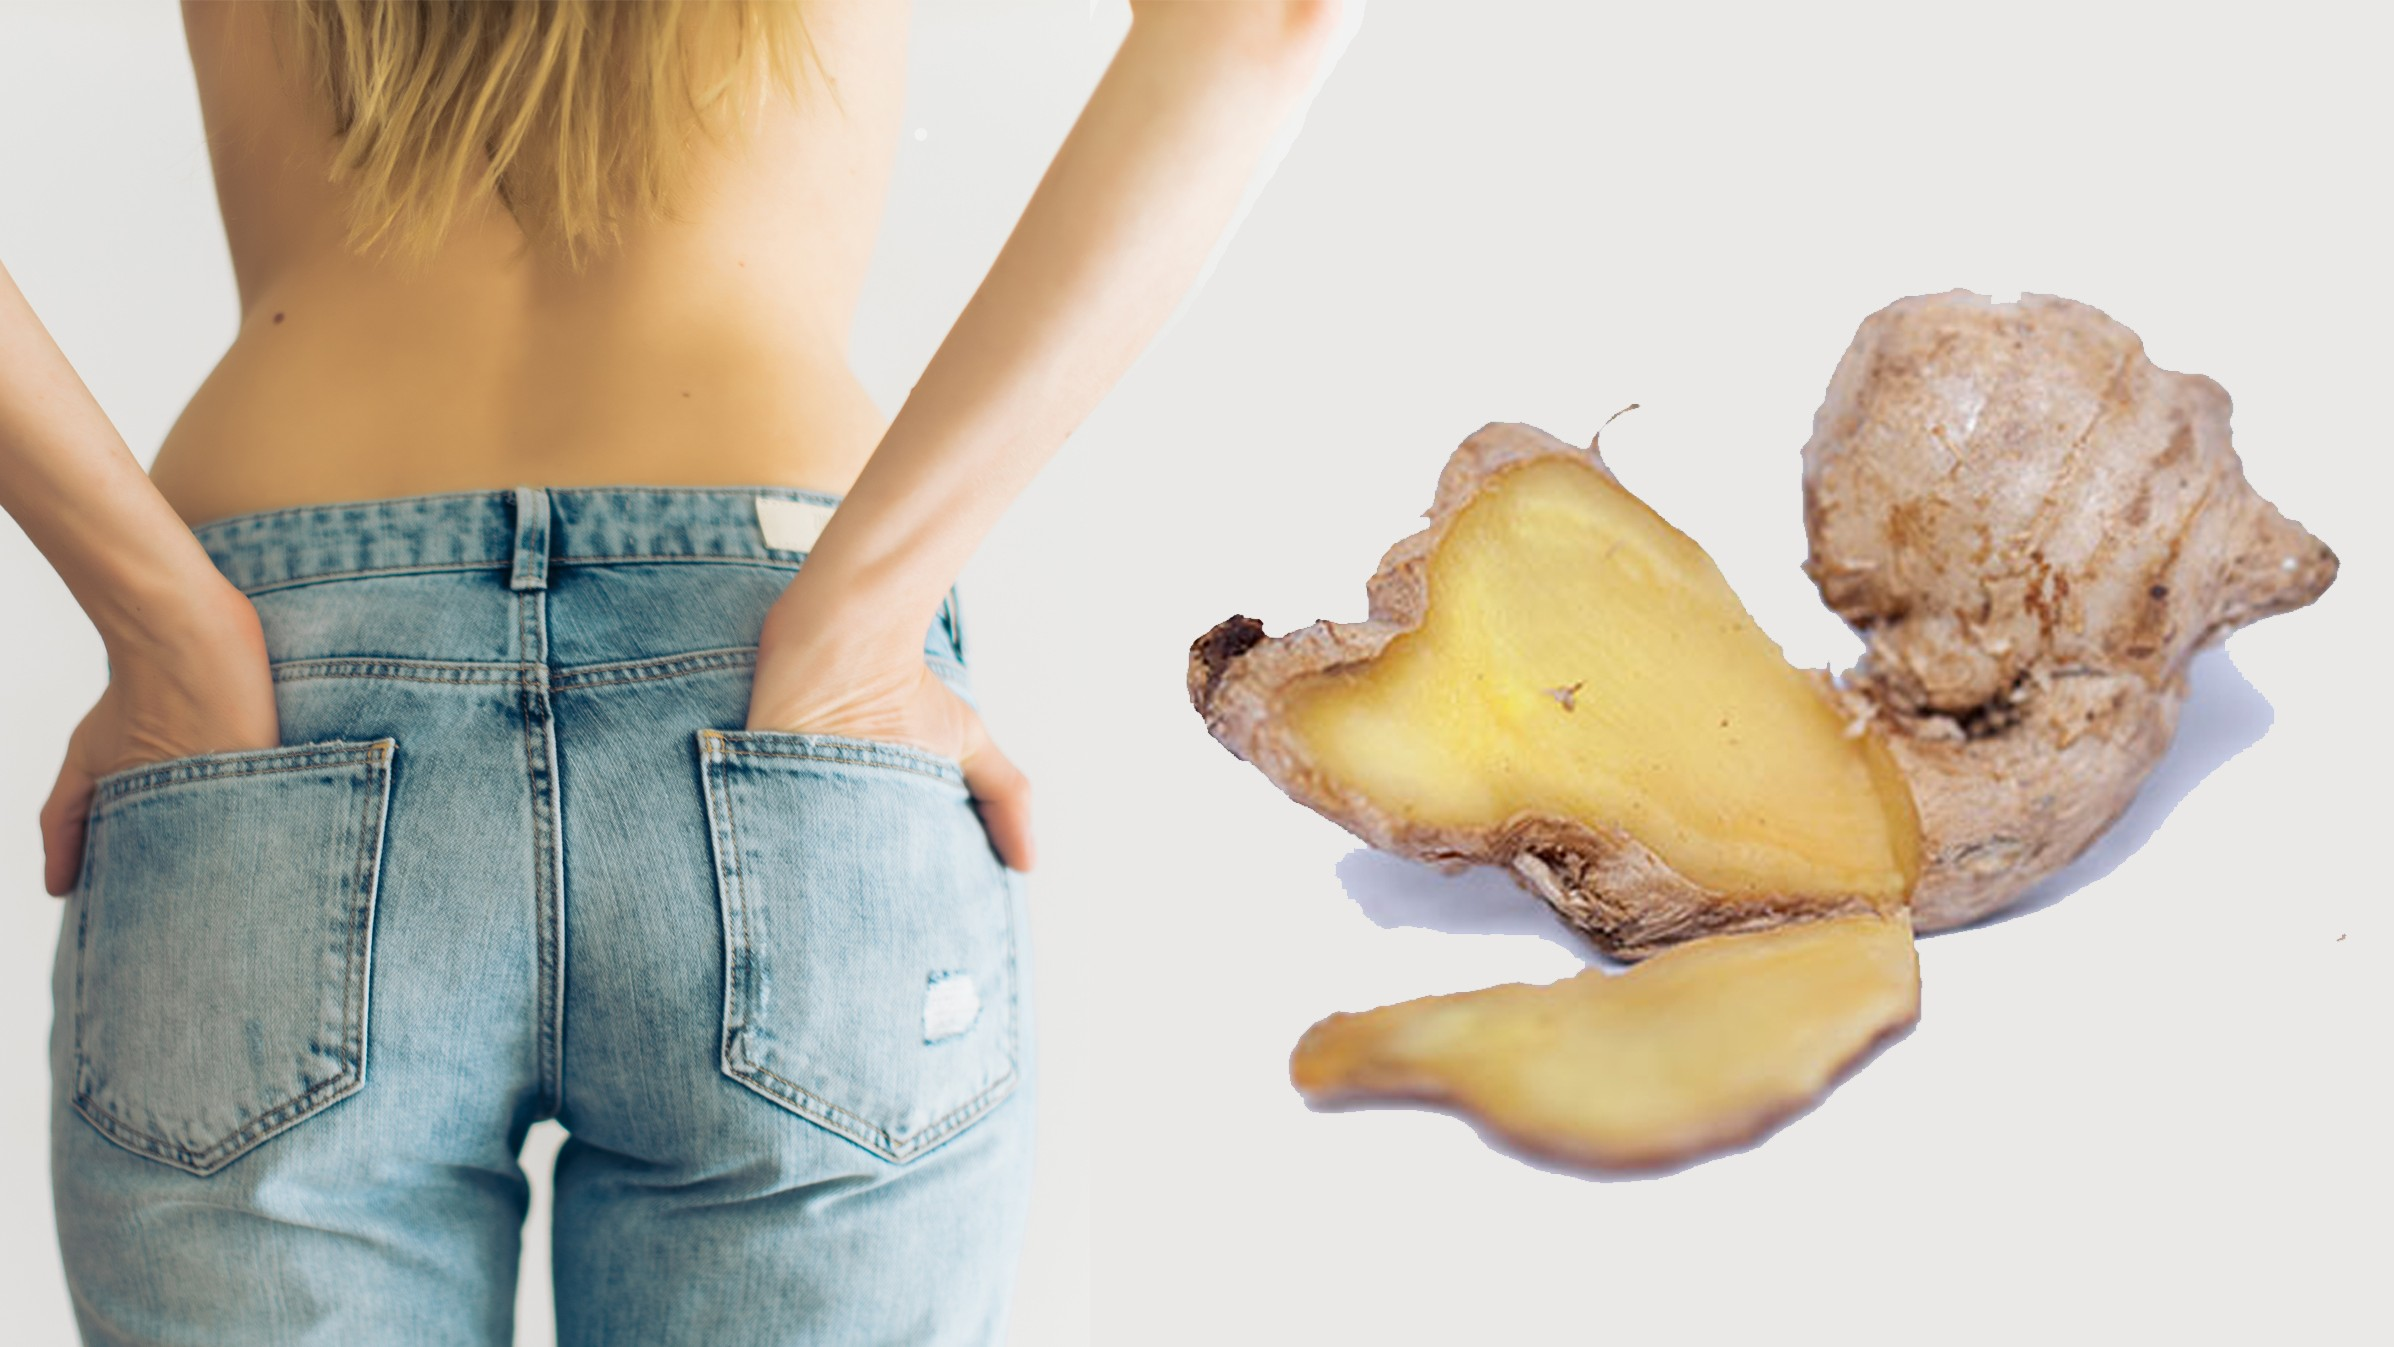 An Intro To Figging The Kink Where You Put Ginger In Your Butt